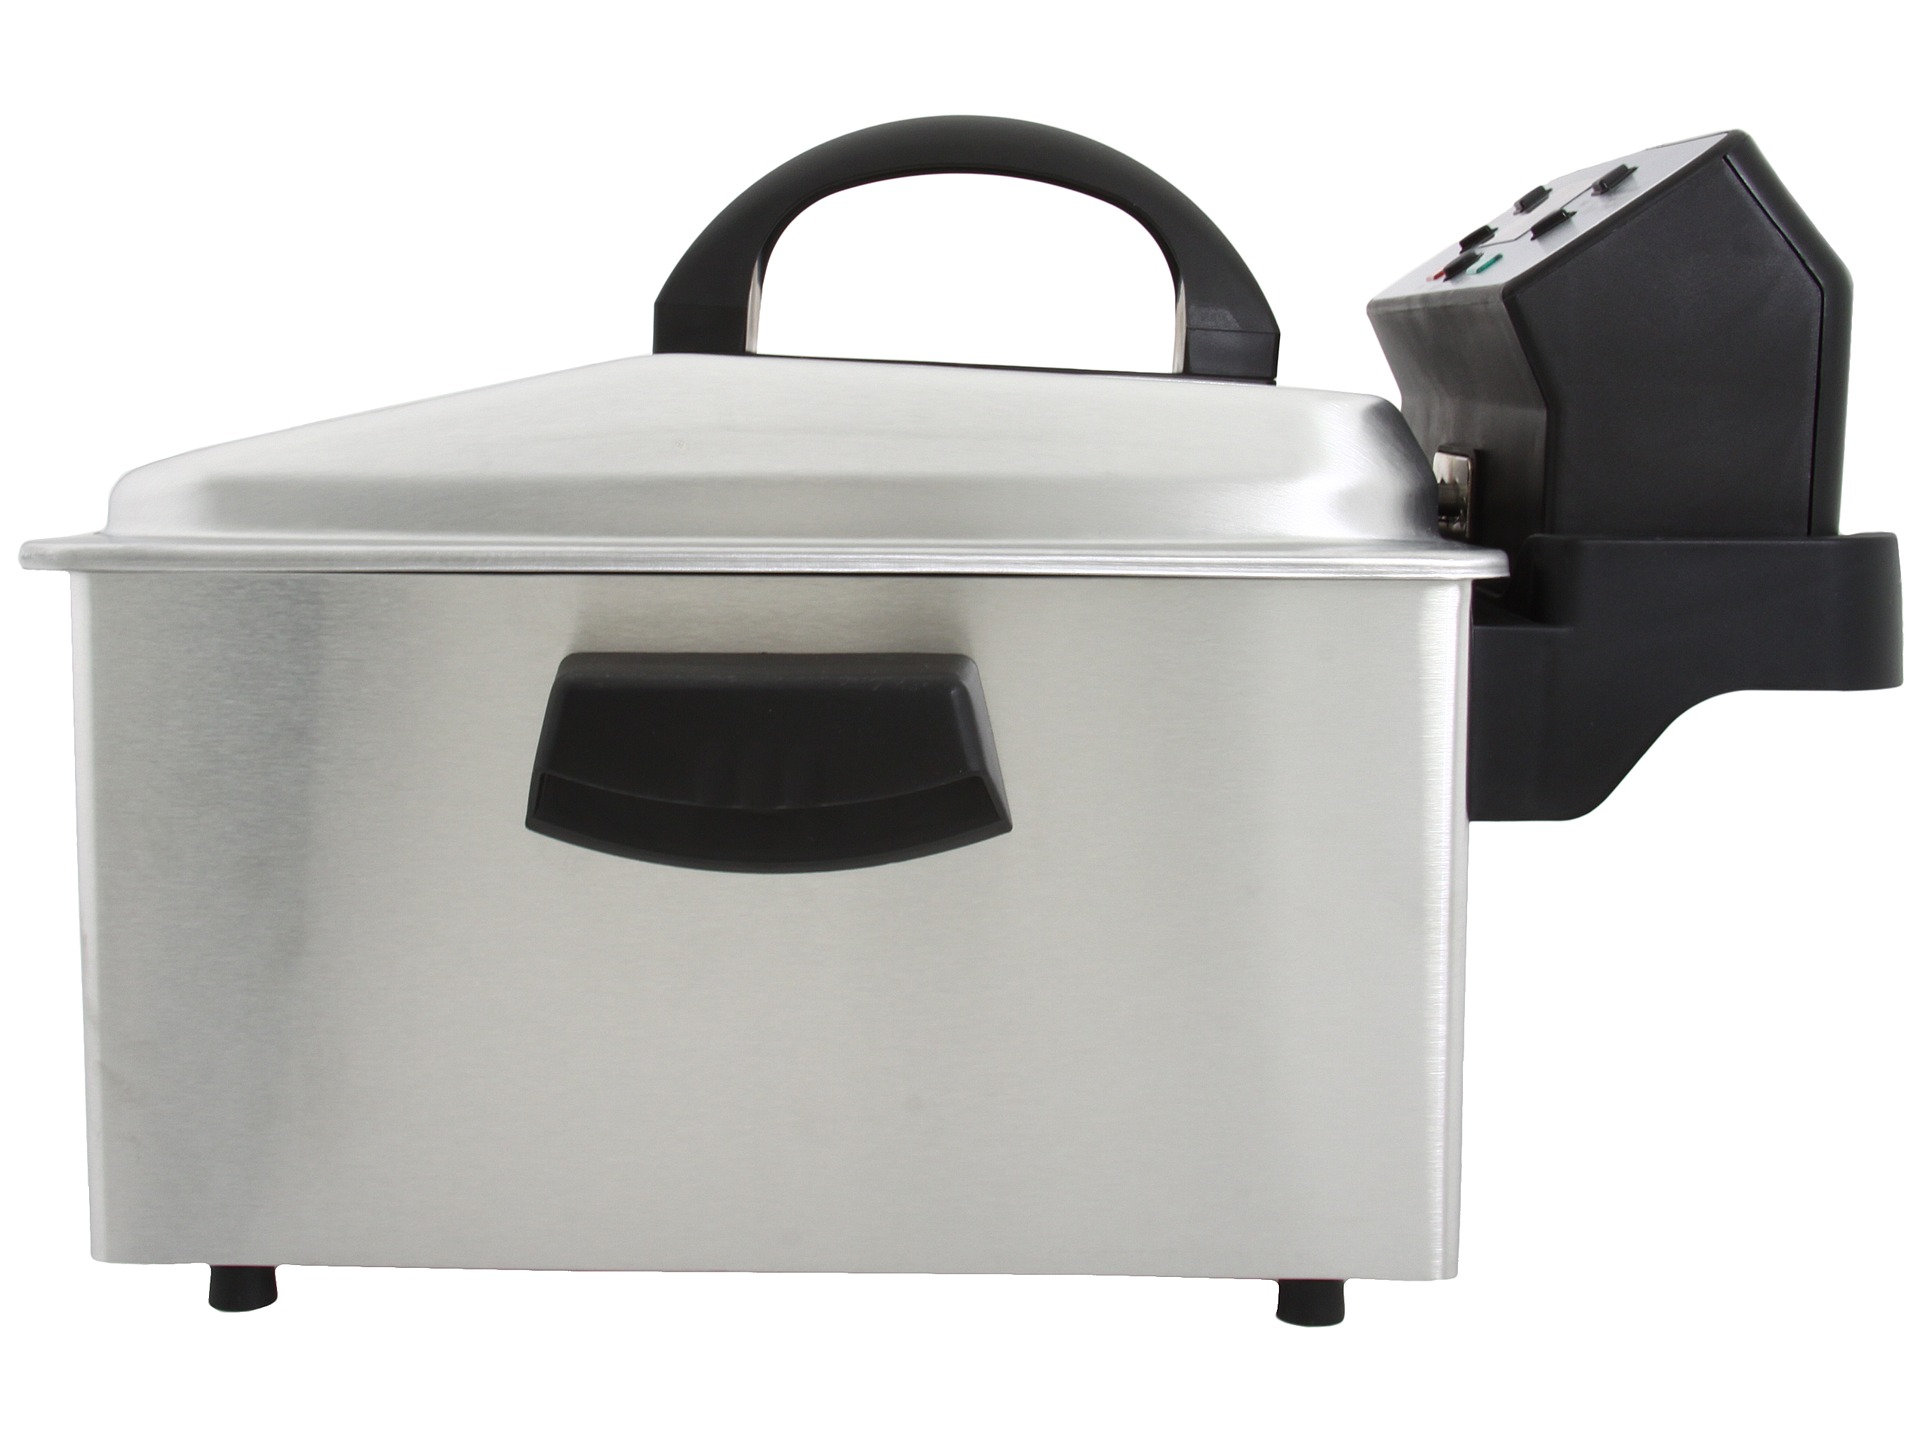 Waring Pro Df280 Deep Fryer Brushed Stainless Steel